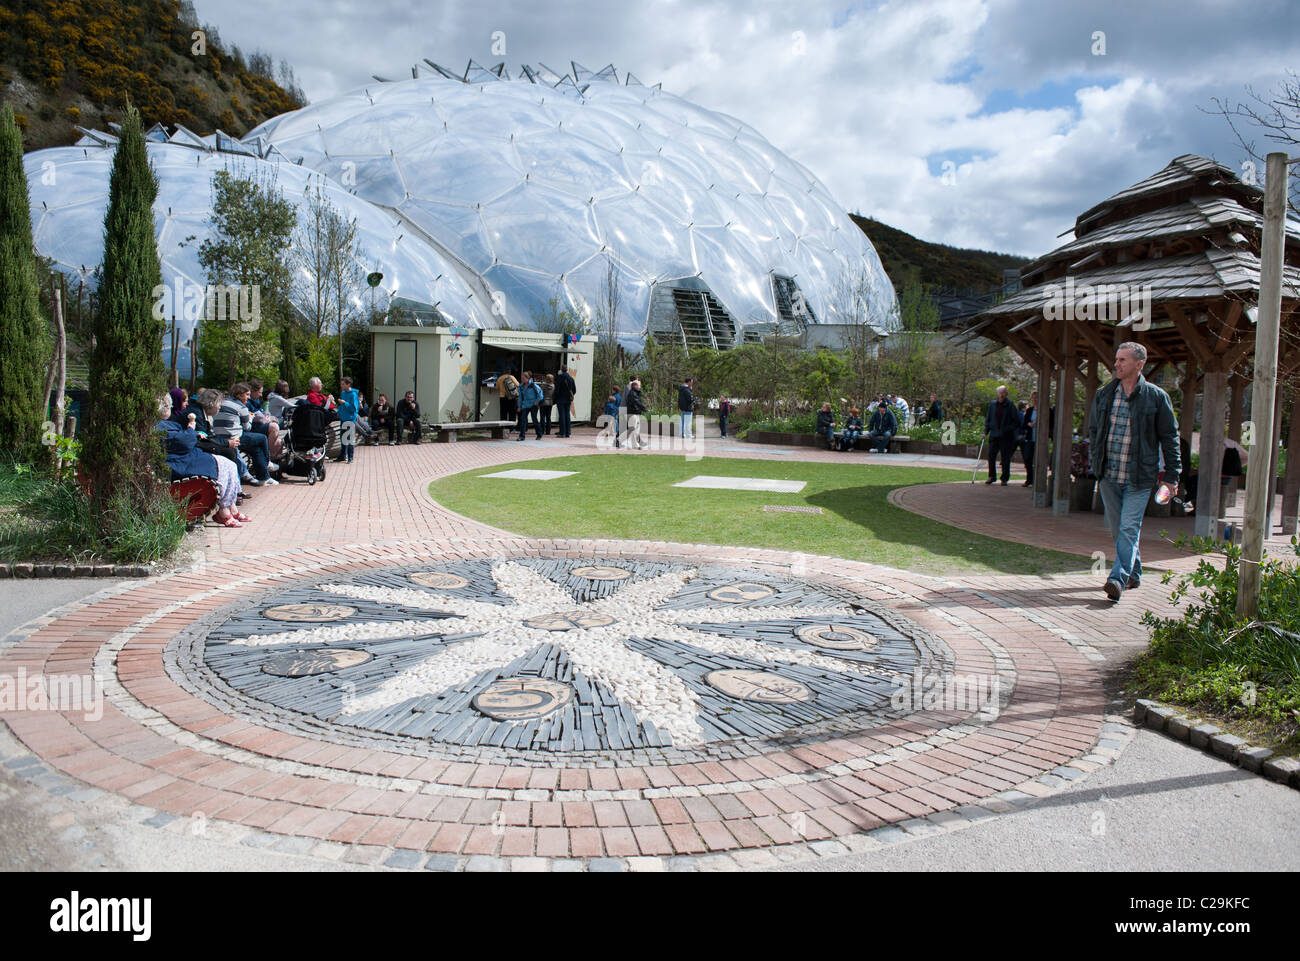 A Mosaic design in an eating area outside of the Eden Project tourist attraction & ecology centre, Bodelva, - Stock Image